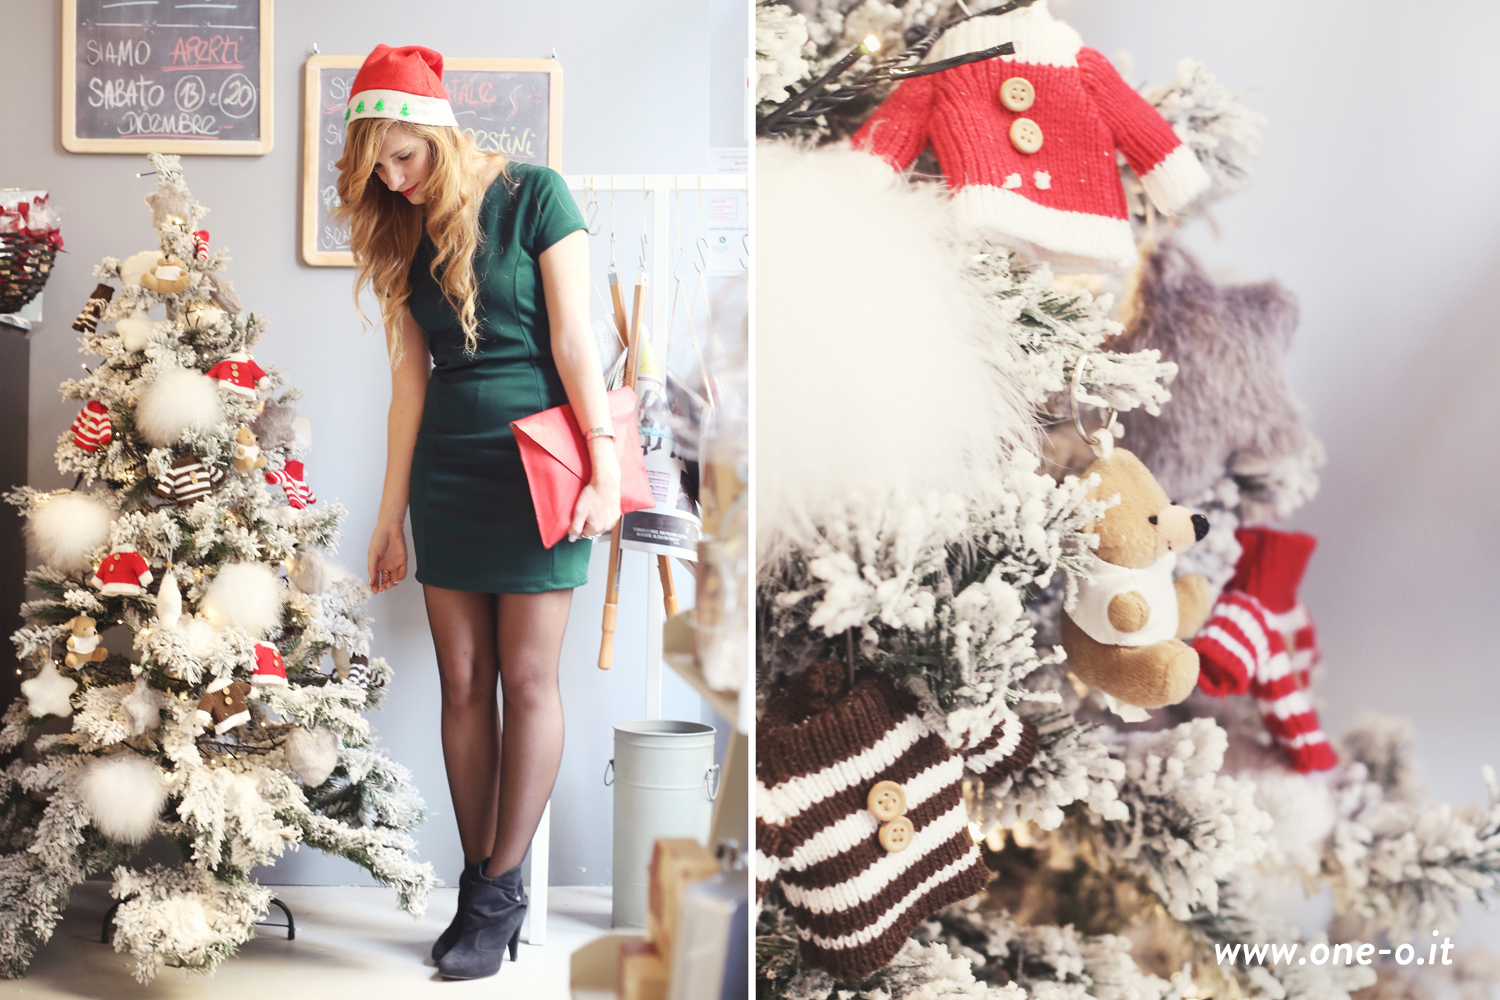 4_outfits_perfect_for_your_Christmas_06#christmas #clothes #fashion #green #ideas #inspiration #ootd #outfit #pinup #red #sparkling #style #trend #vintage #winter #xmas #newyeareve